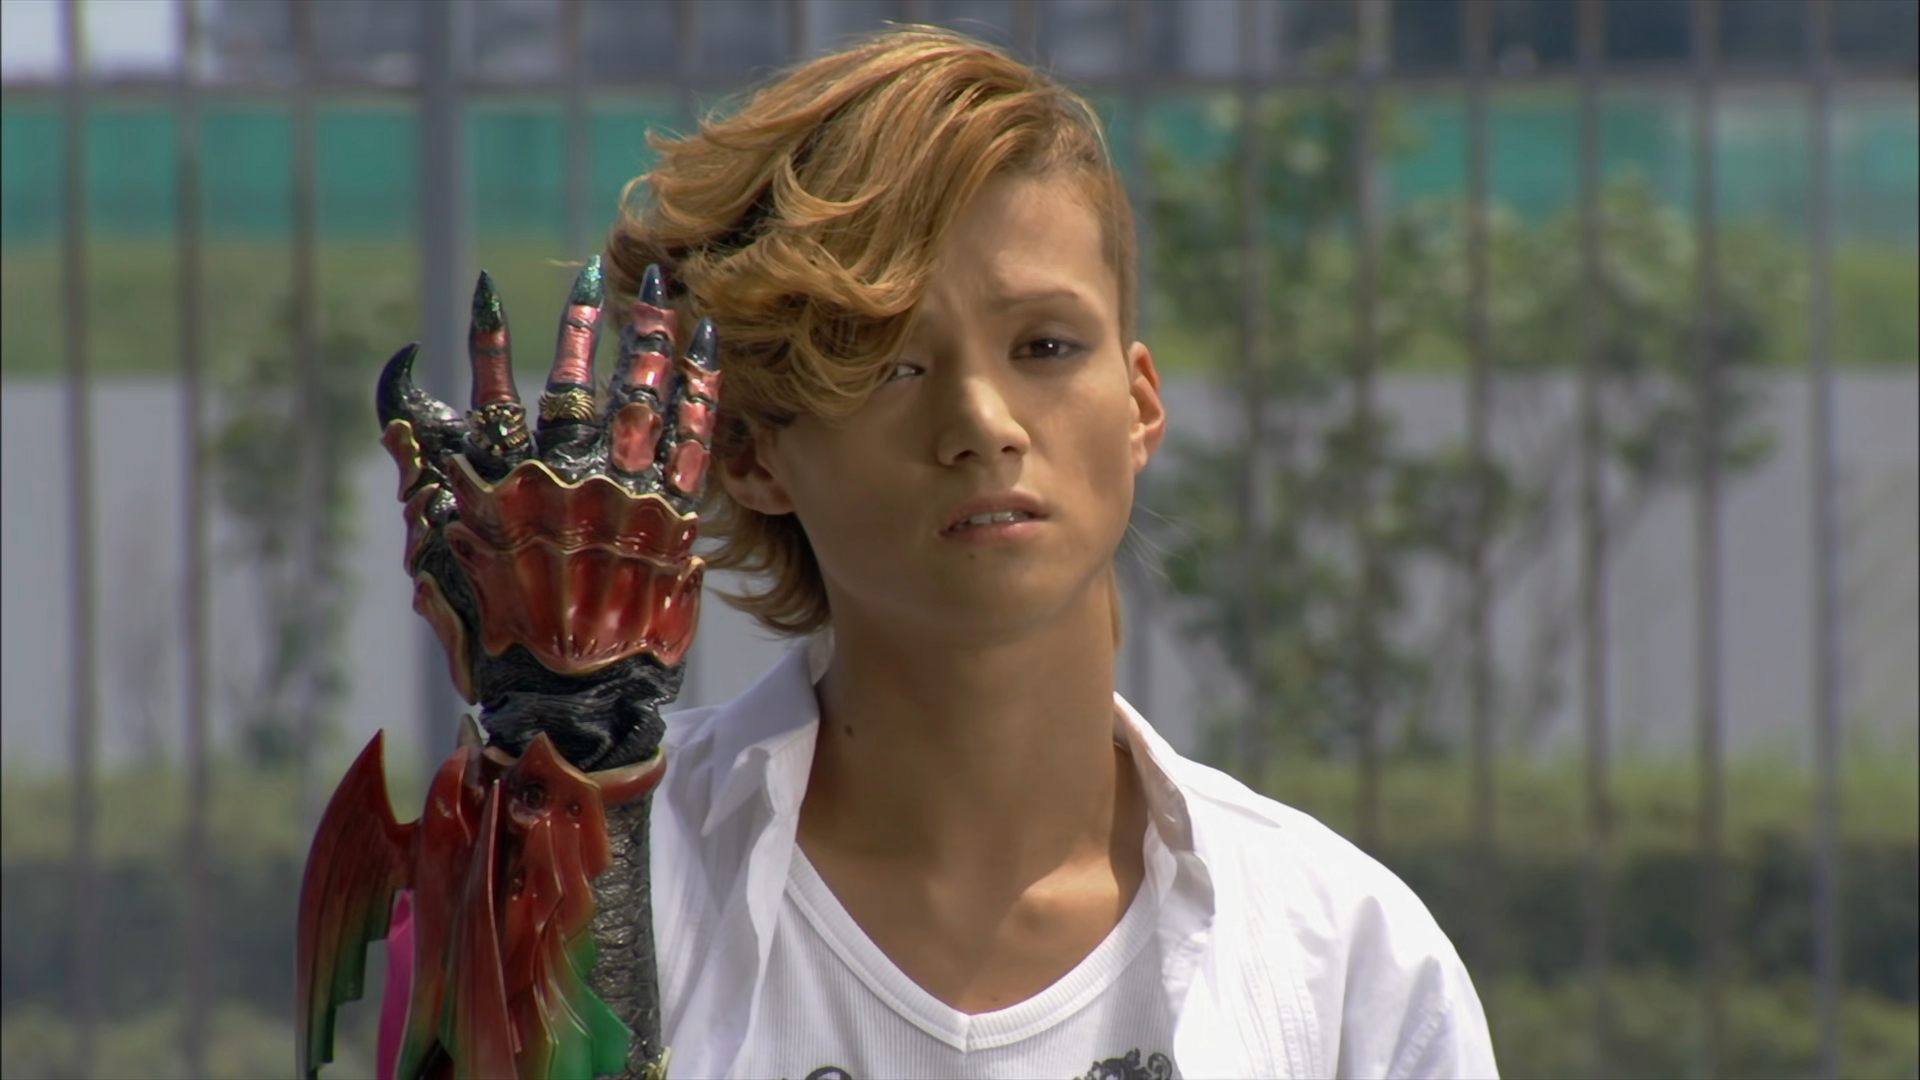 Ankh | Kamen Rider Wiki | FANDOM powered by Wikia